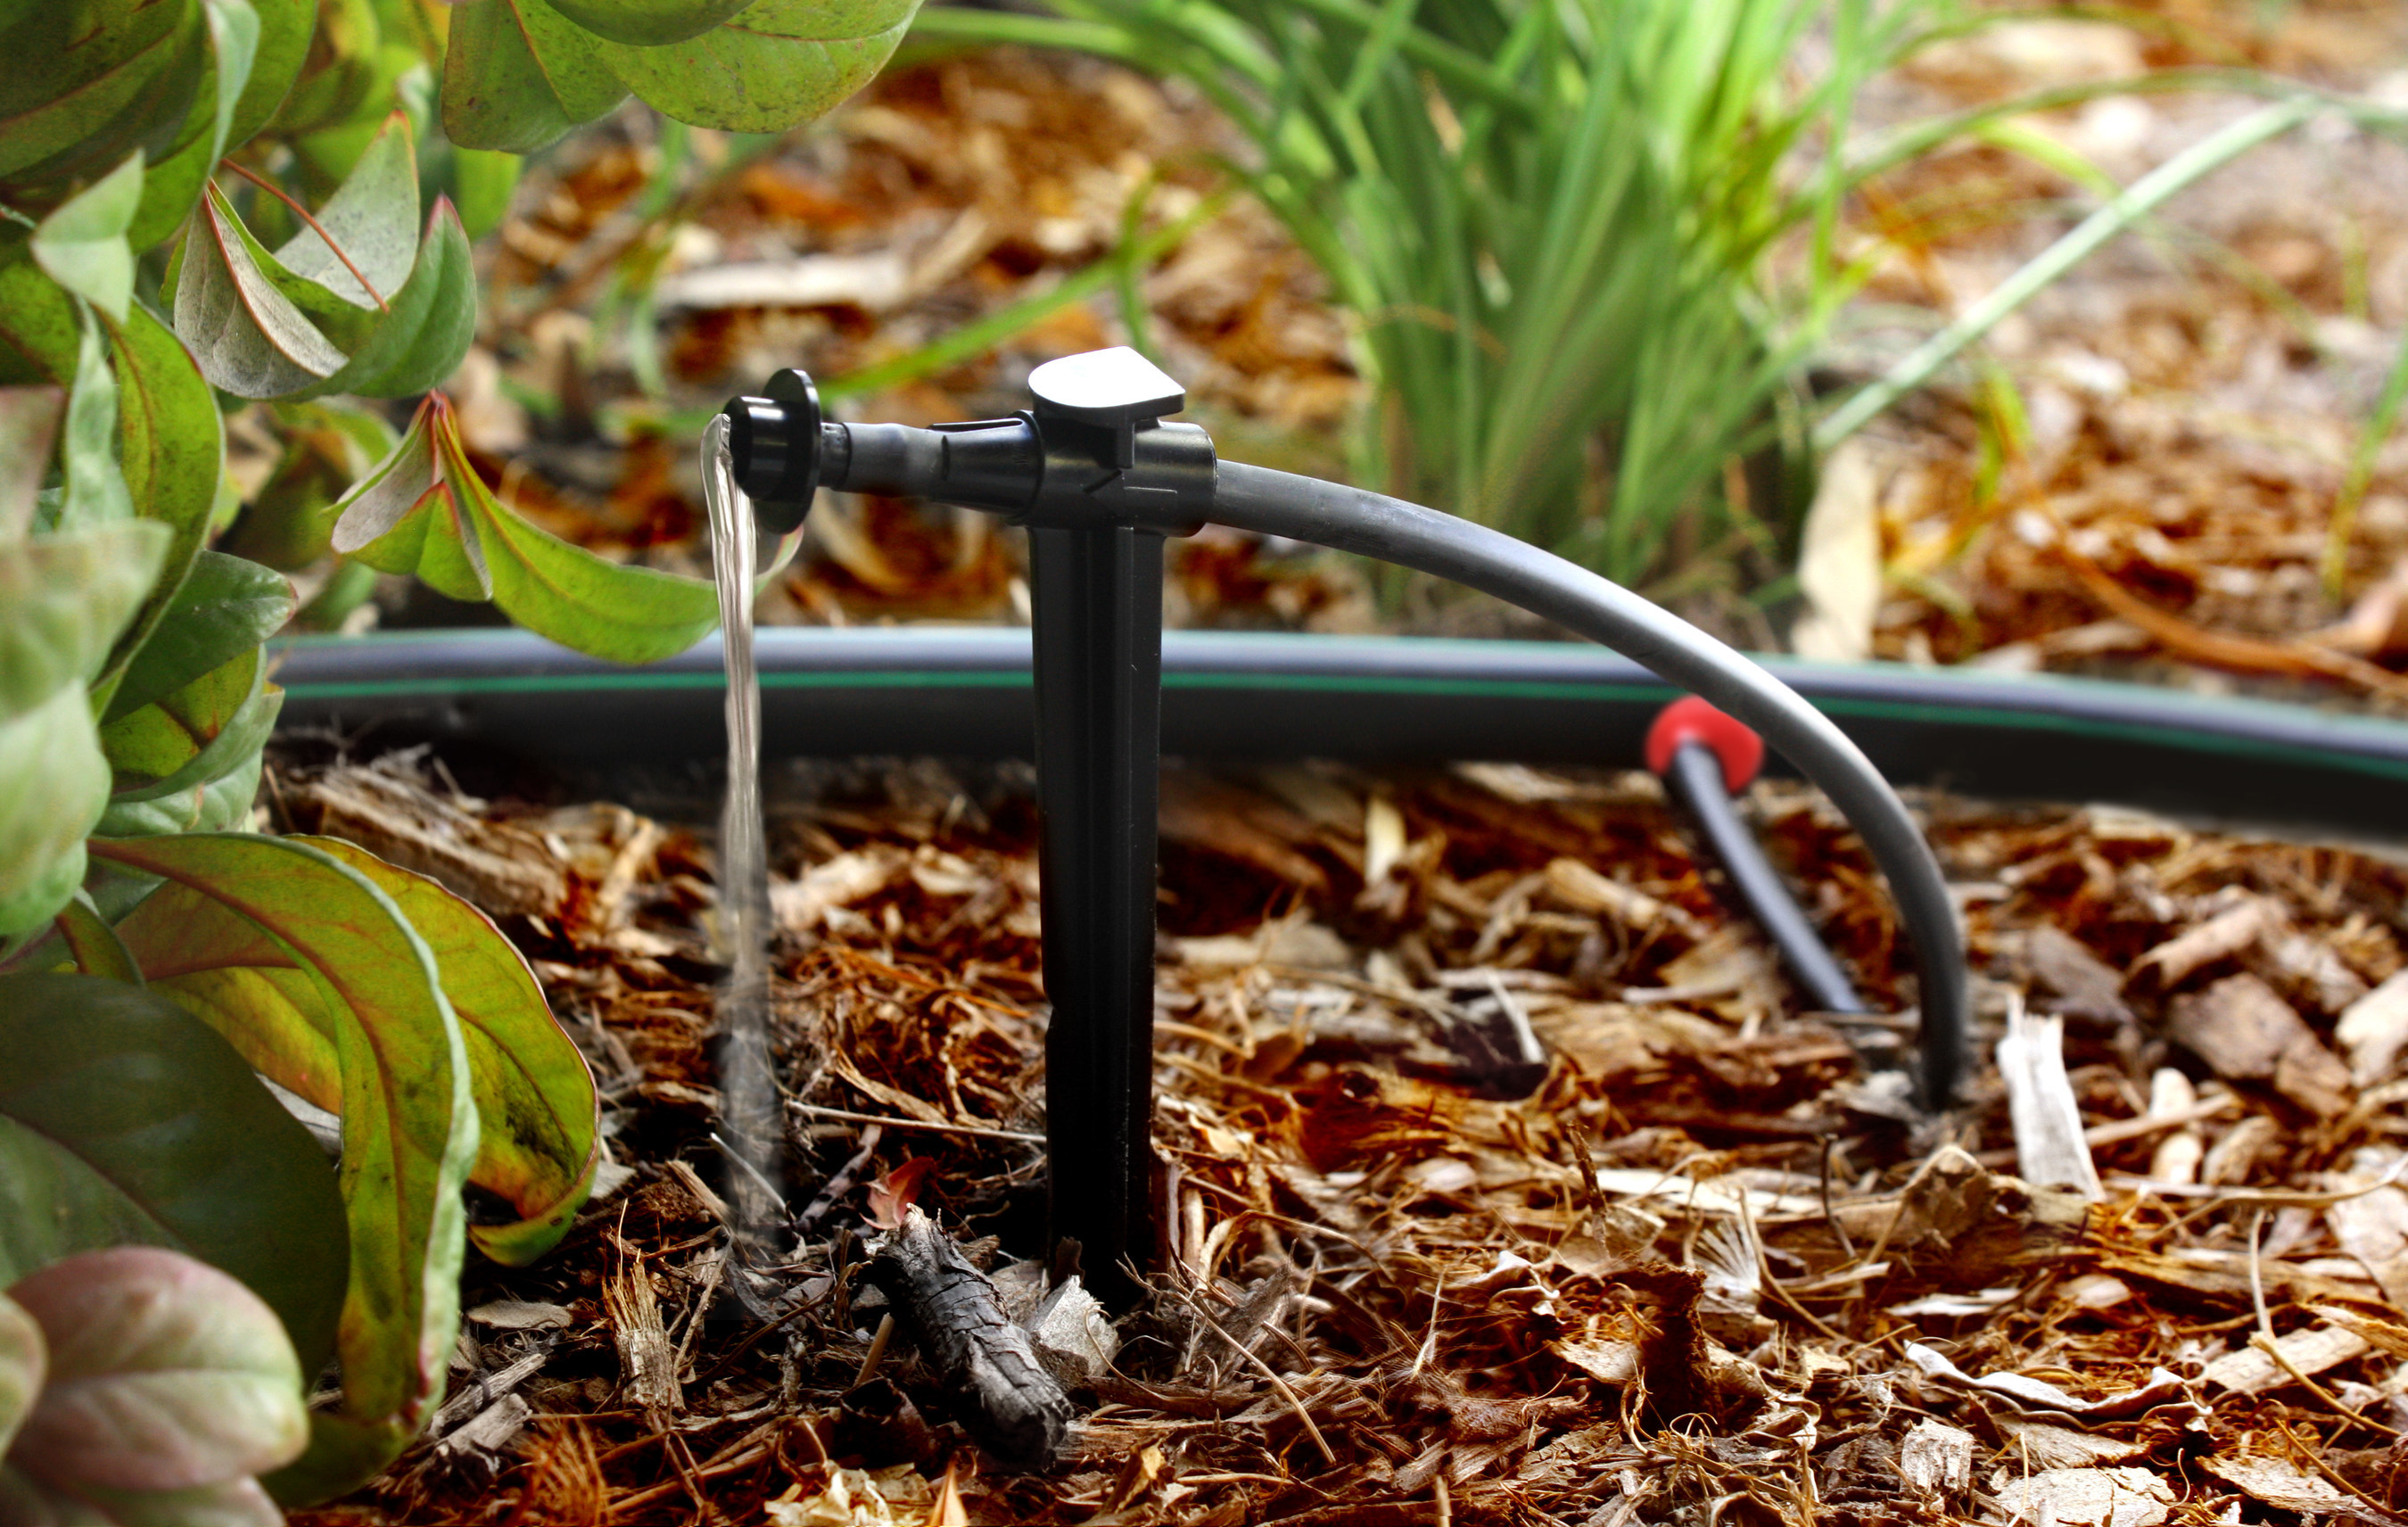 Rain Bird Suggests These Steps For A Beautiful Yard While Conserving Water